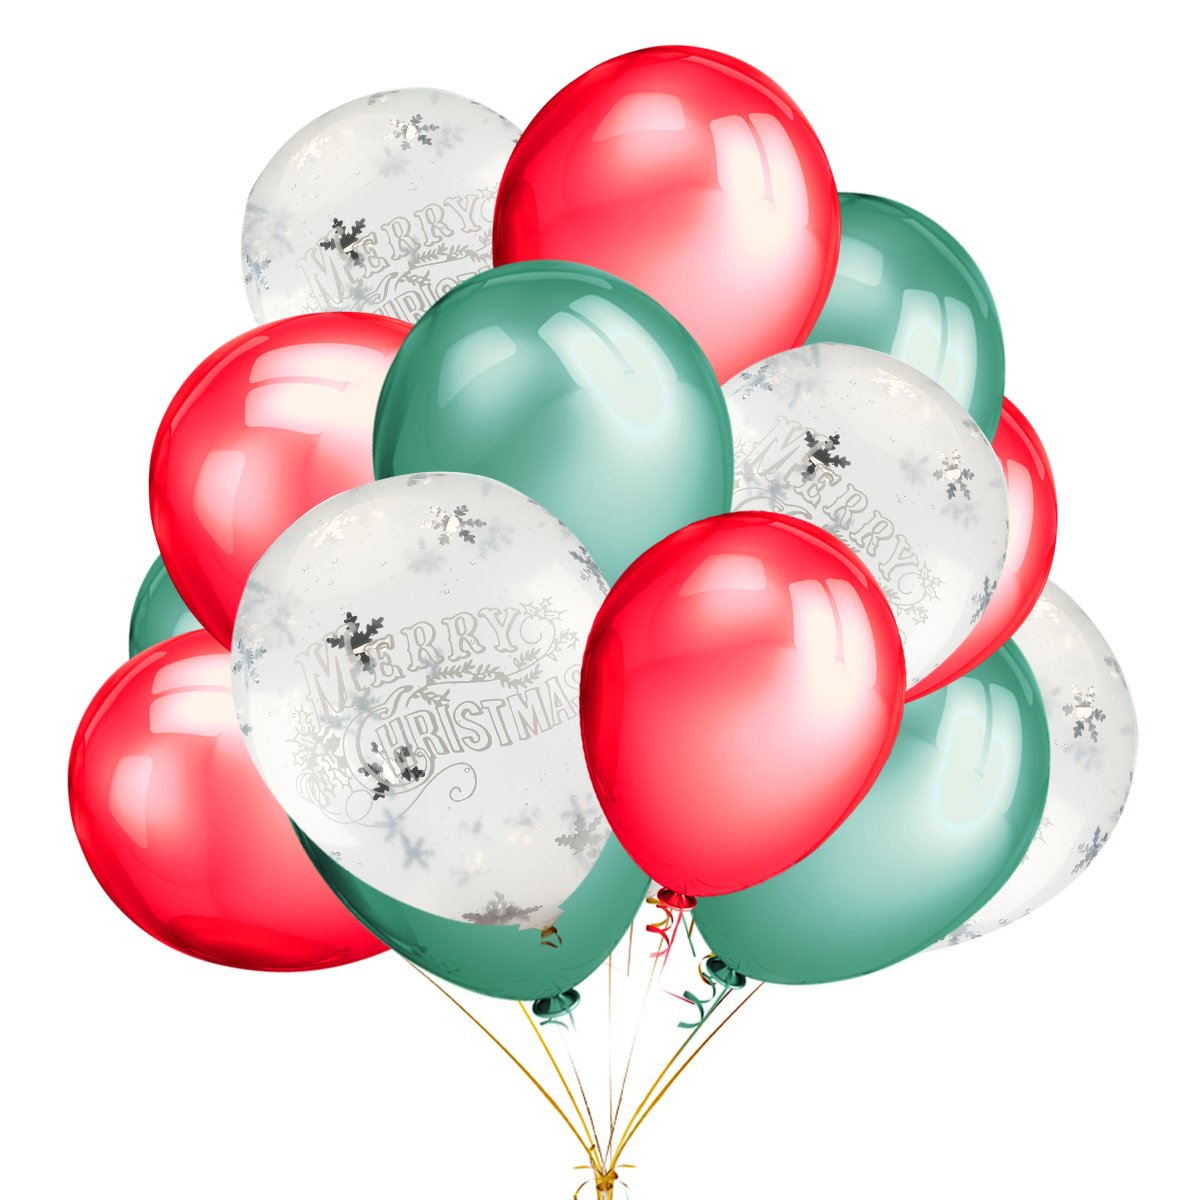 15 pcs Merry Christmas Printed White Snowflakes Confetti Balloons with 12 inches Green and Red Latex Party Balloons (30 Pcs) For Christmas Winter Wonderland Decorations Ornaments Party Supplies